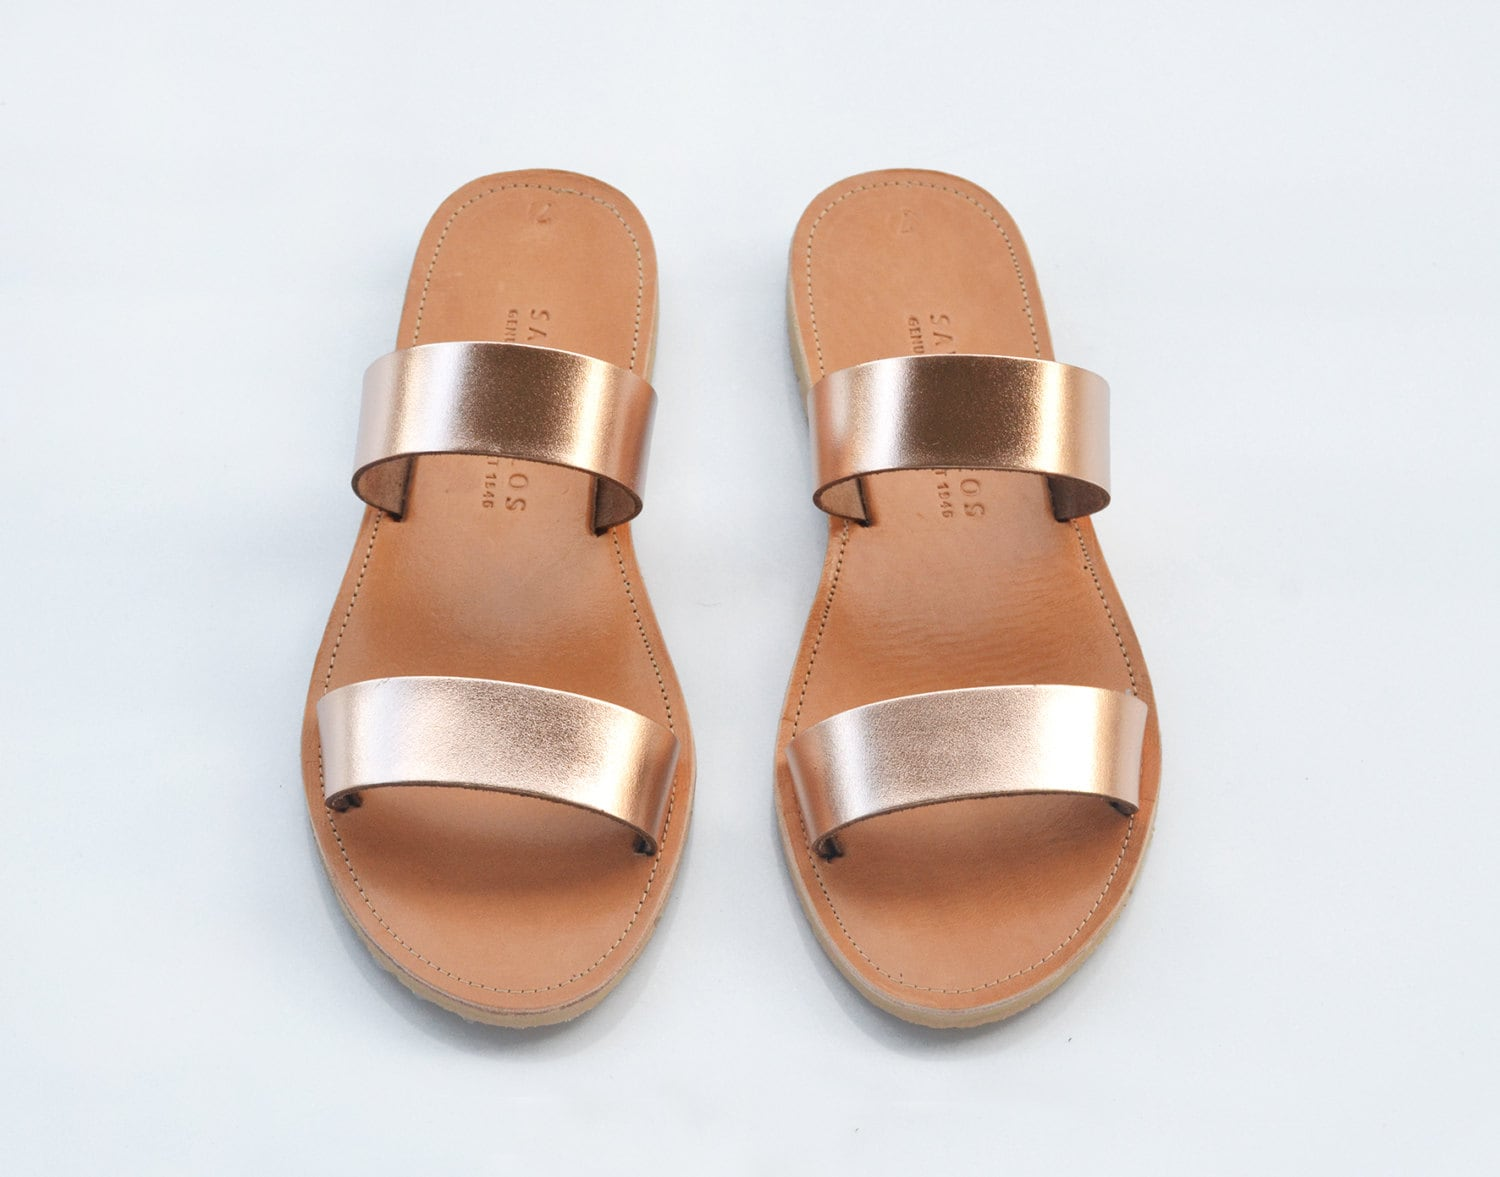 e38f53647 Leather sandals Two strap greek sandals in rose gold leather